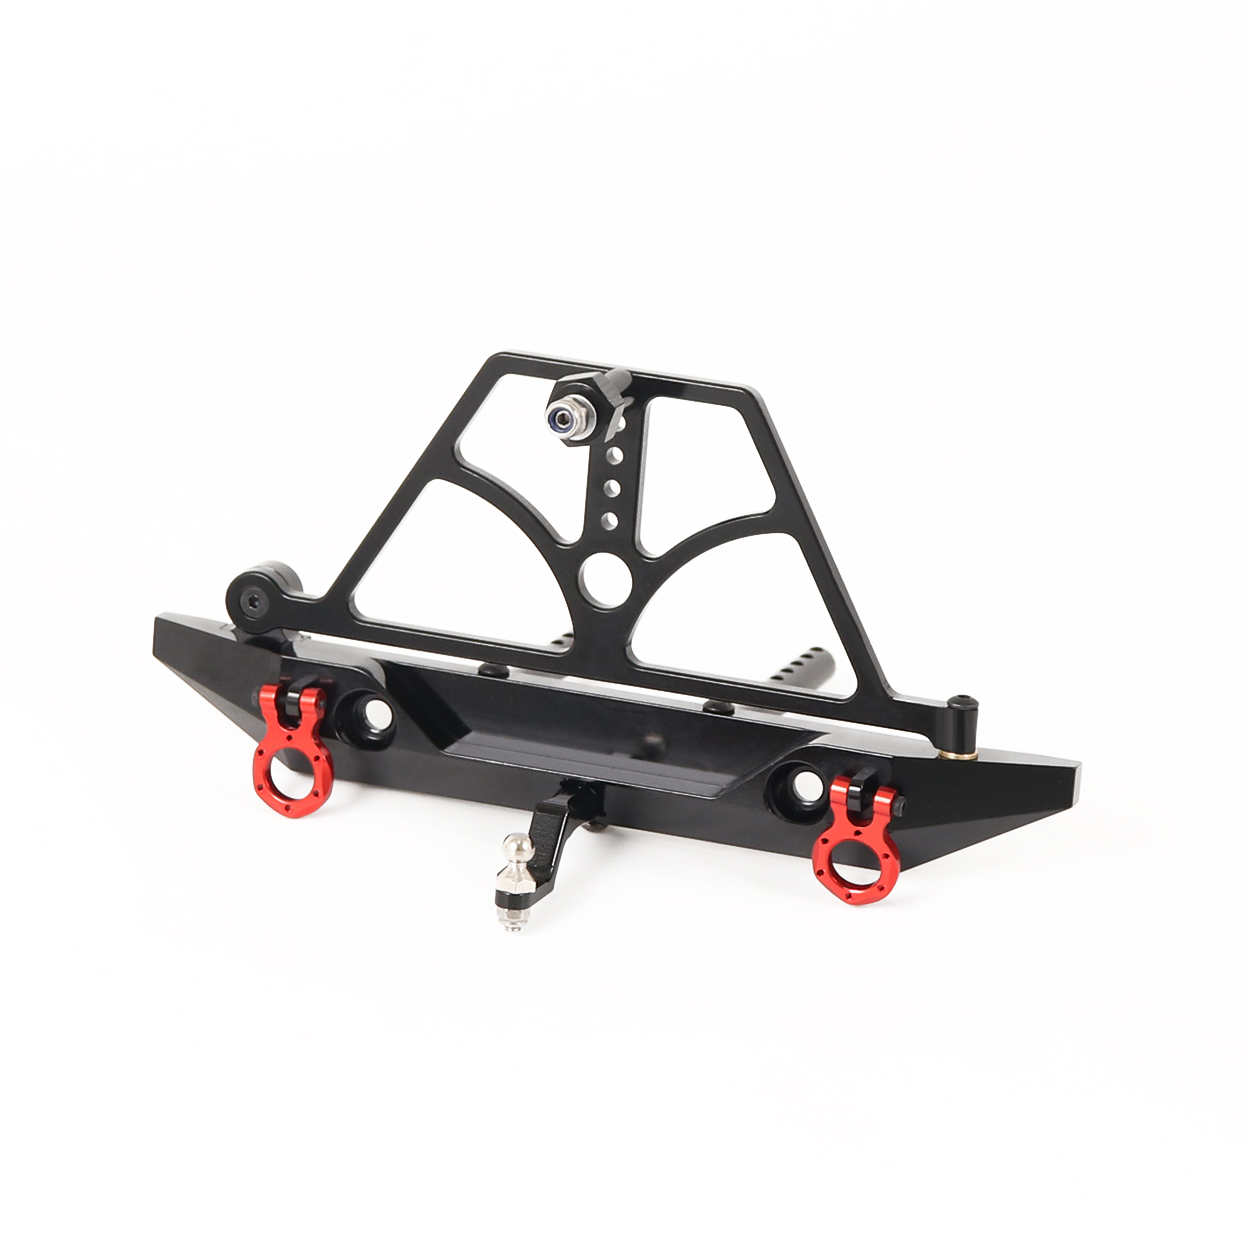 Aluminum Alloy RC Rear Bumper With Spare Tire Rack Winch Hook For 1/10 RC Crawler Car Axail SCX10 RC 4WD D90 Upgrade Part black